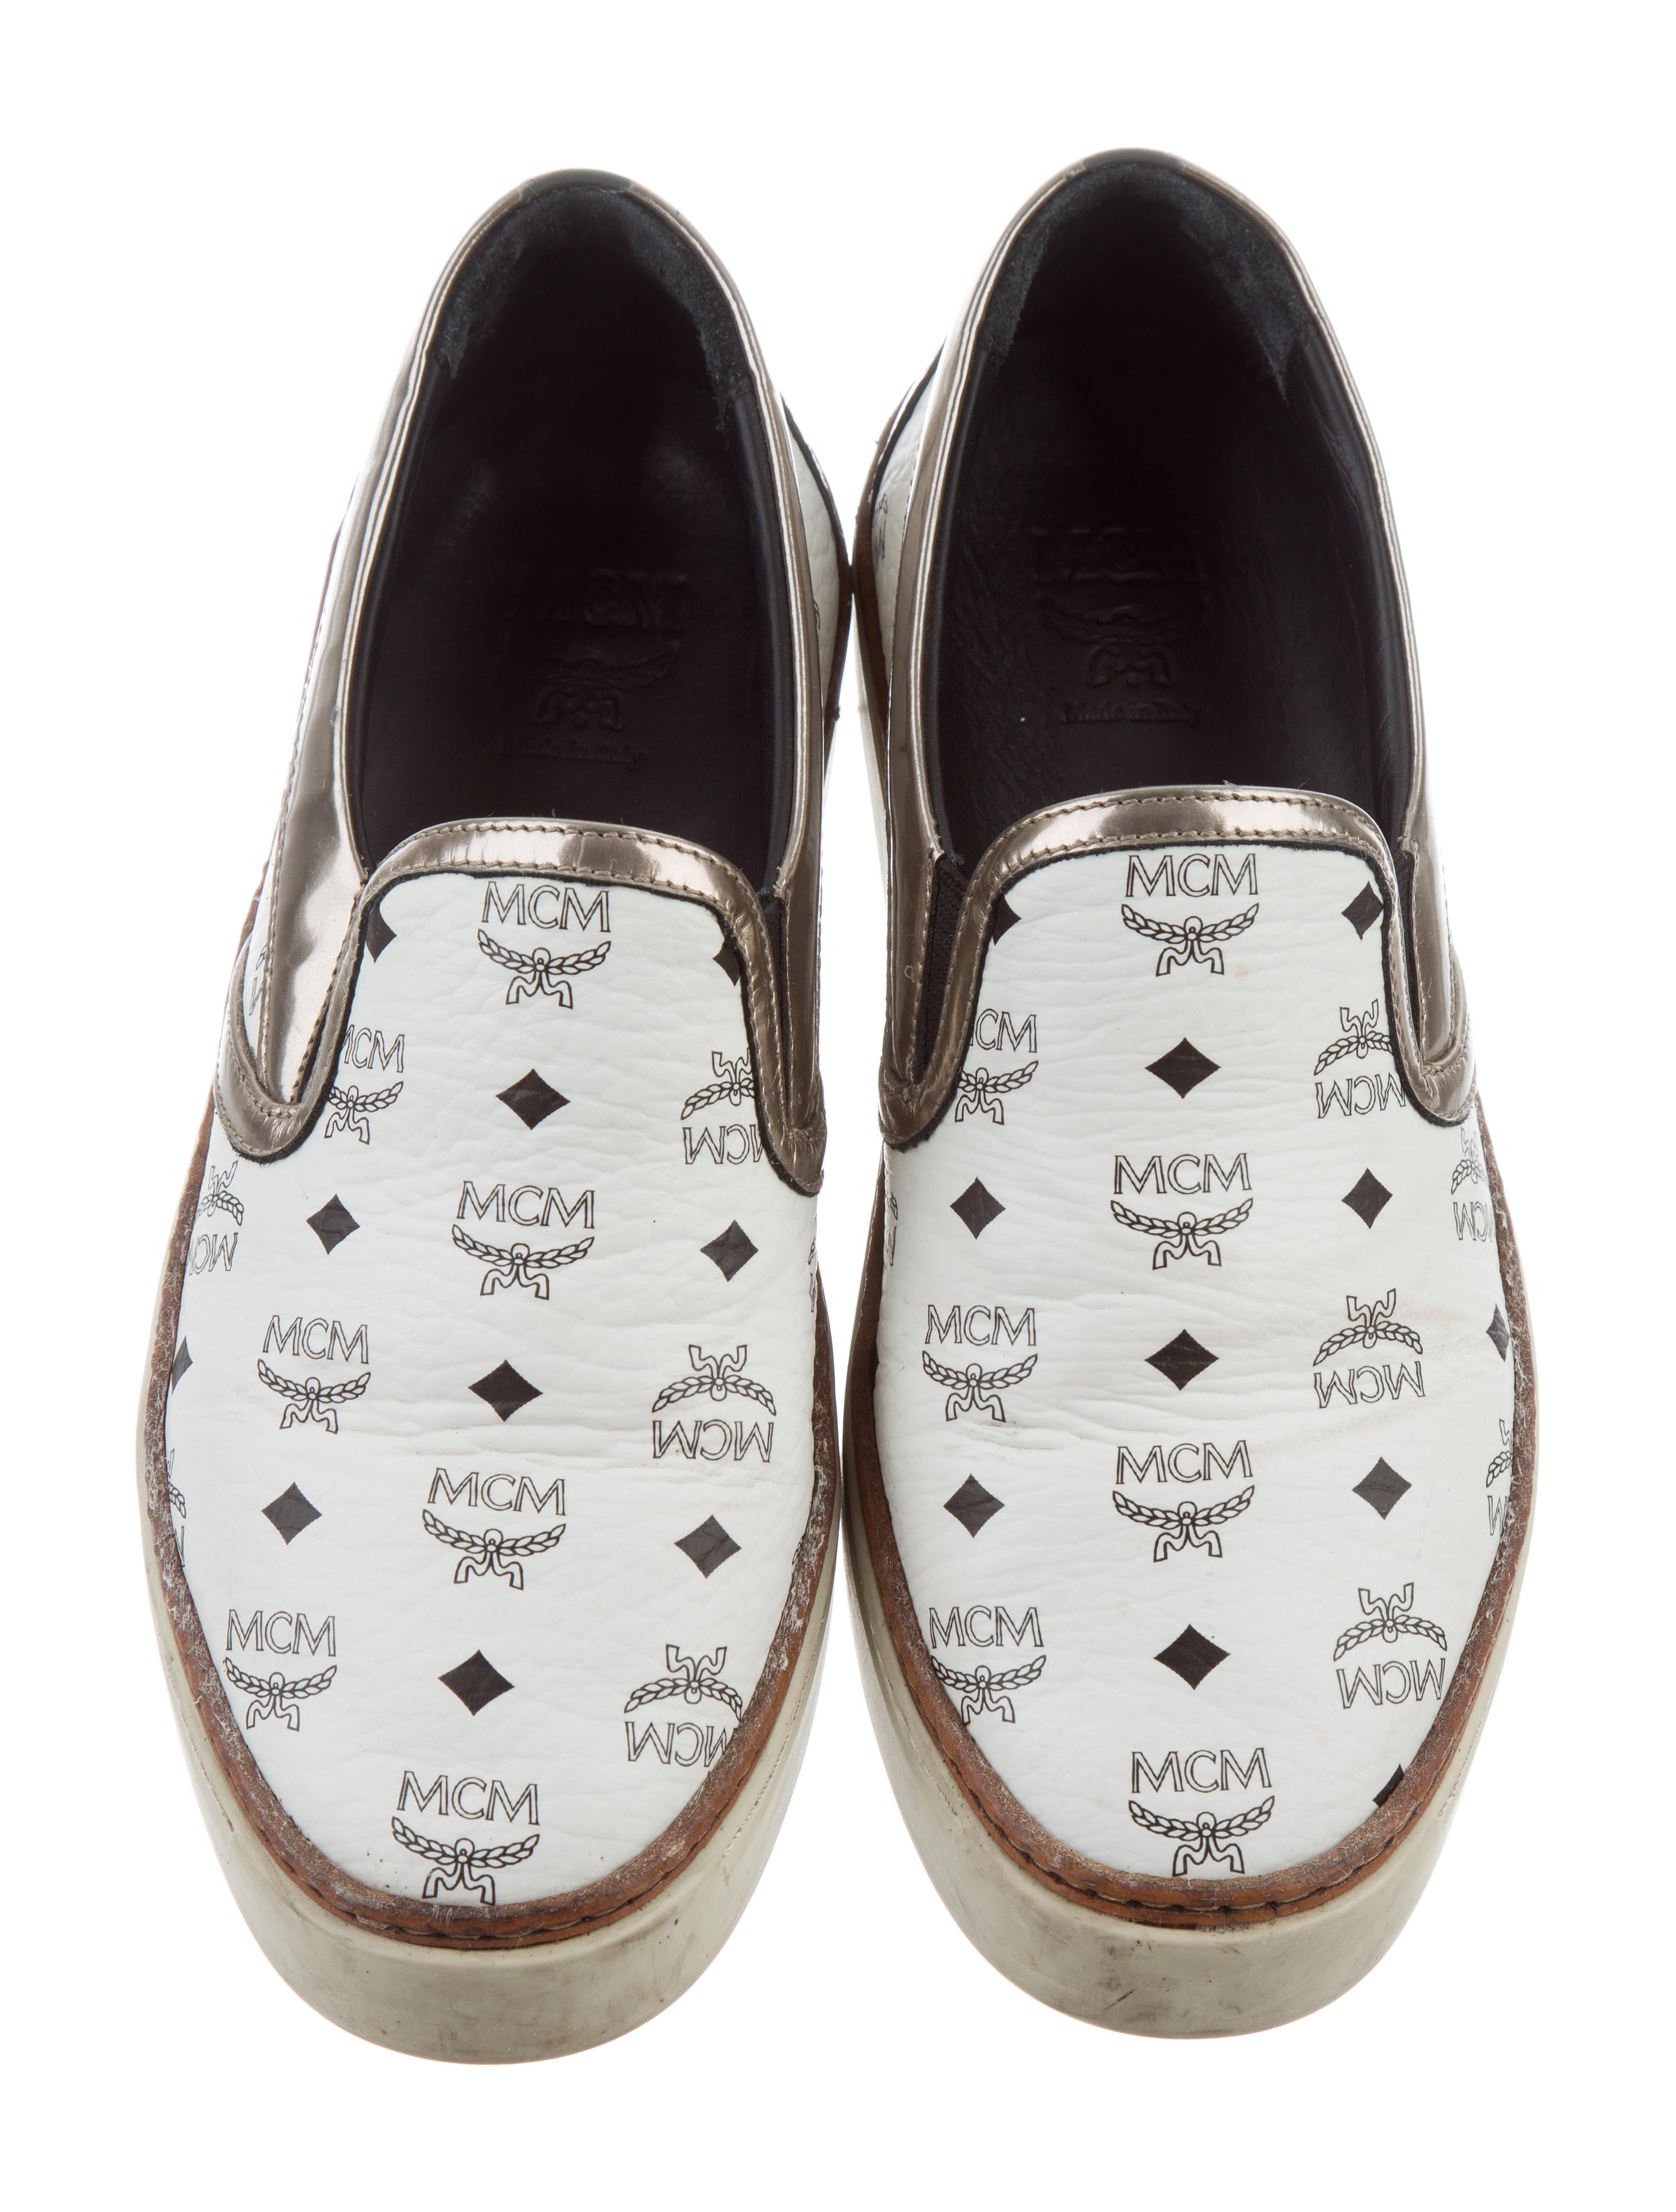 Mcm Shoes Price